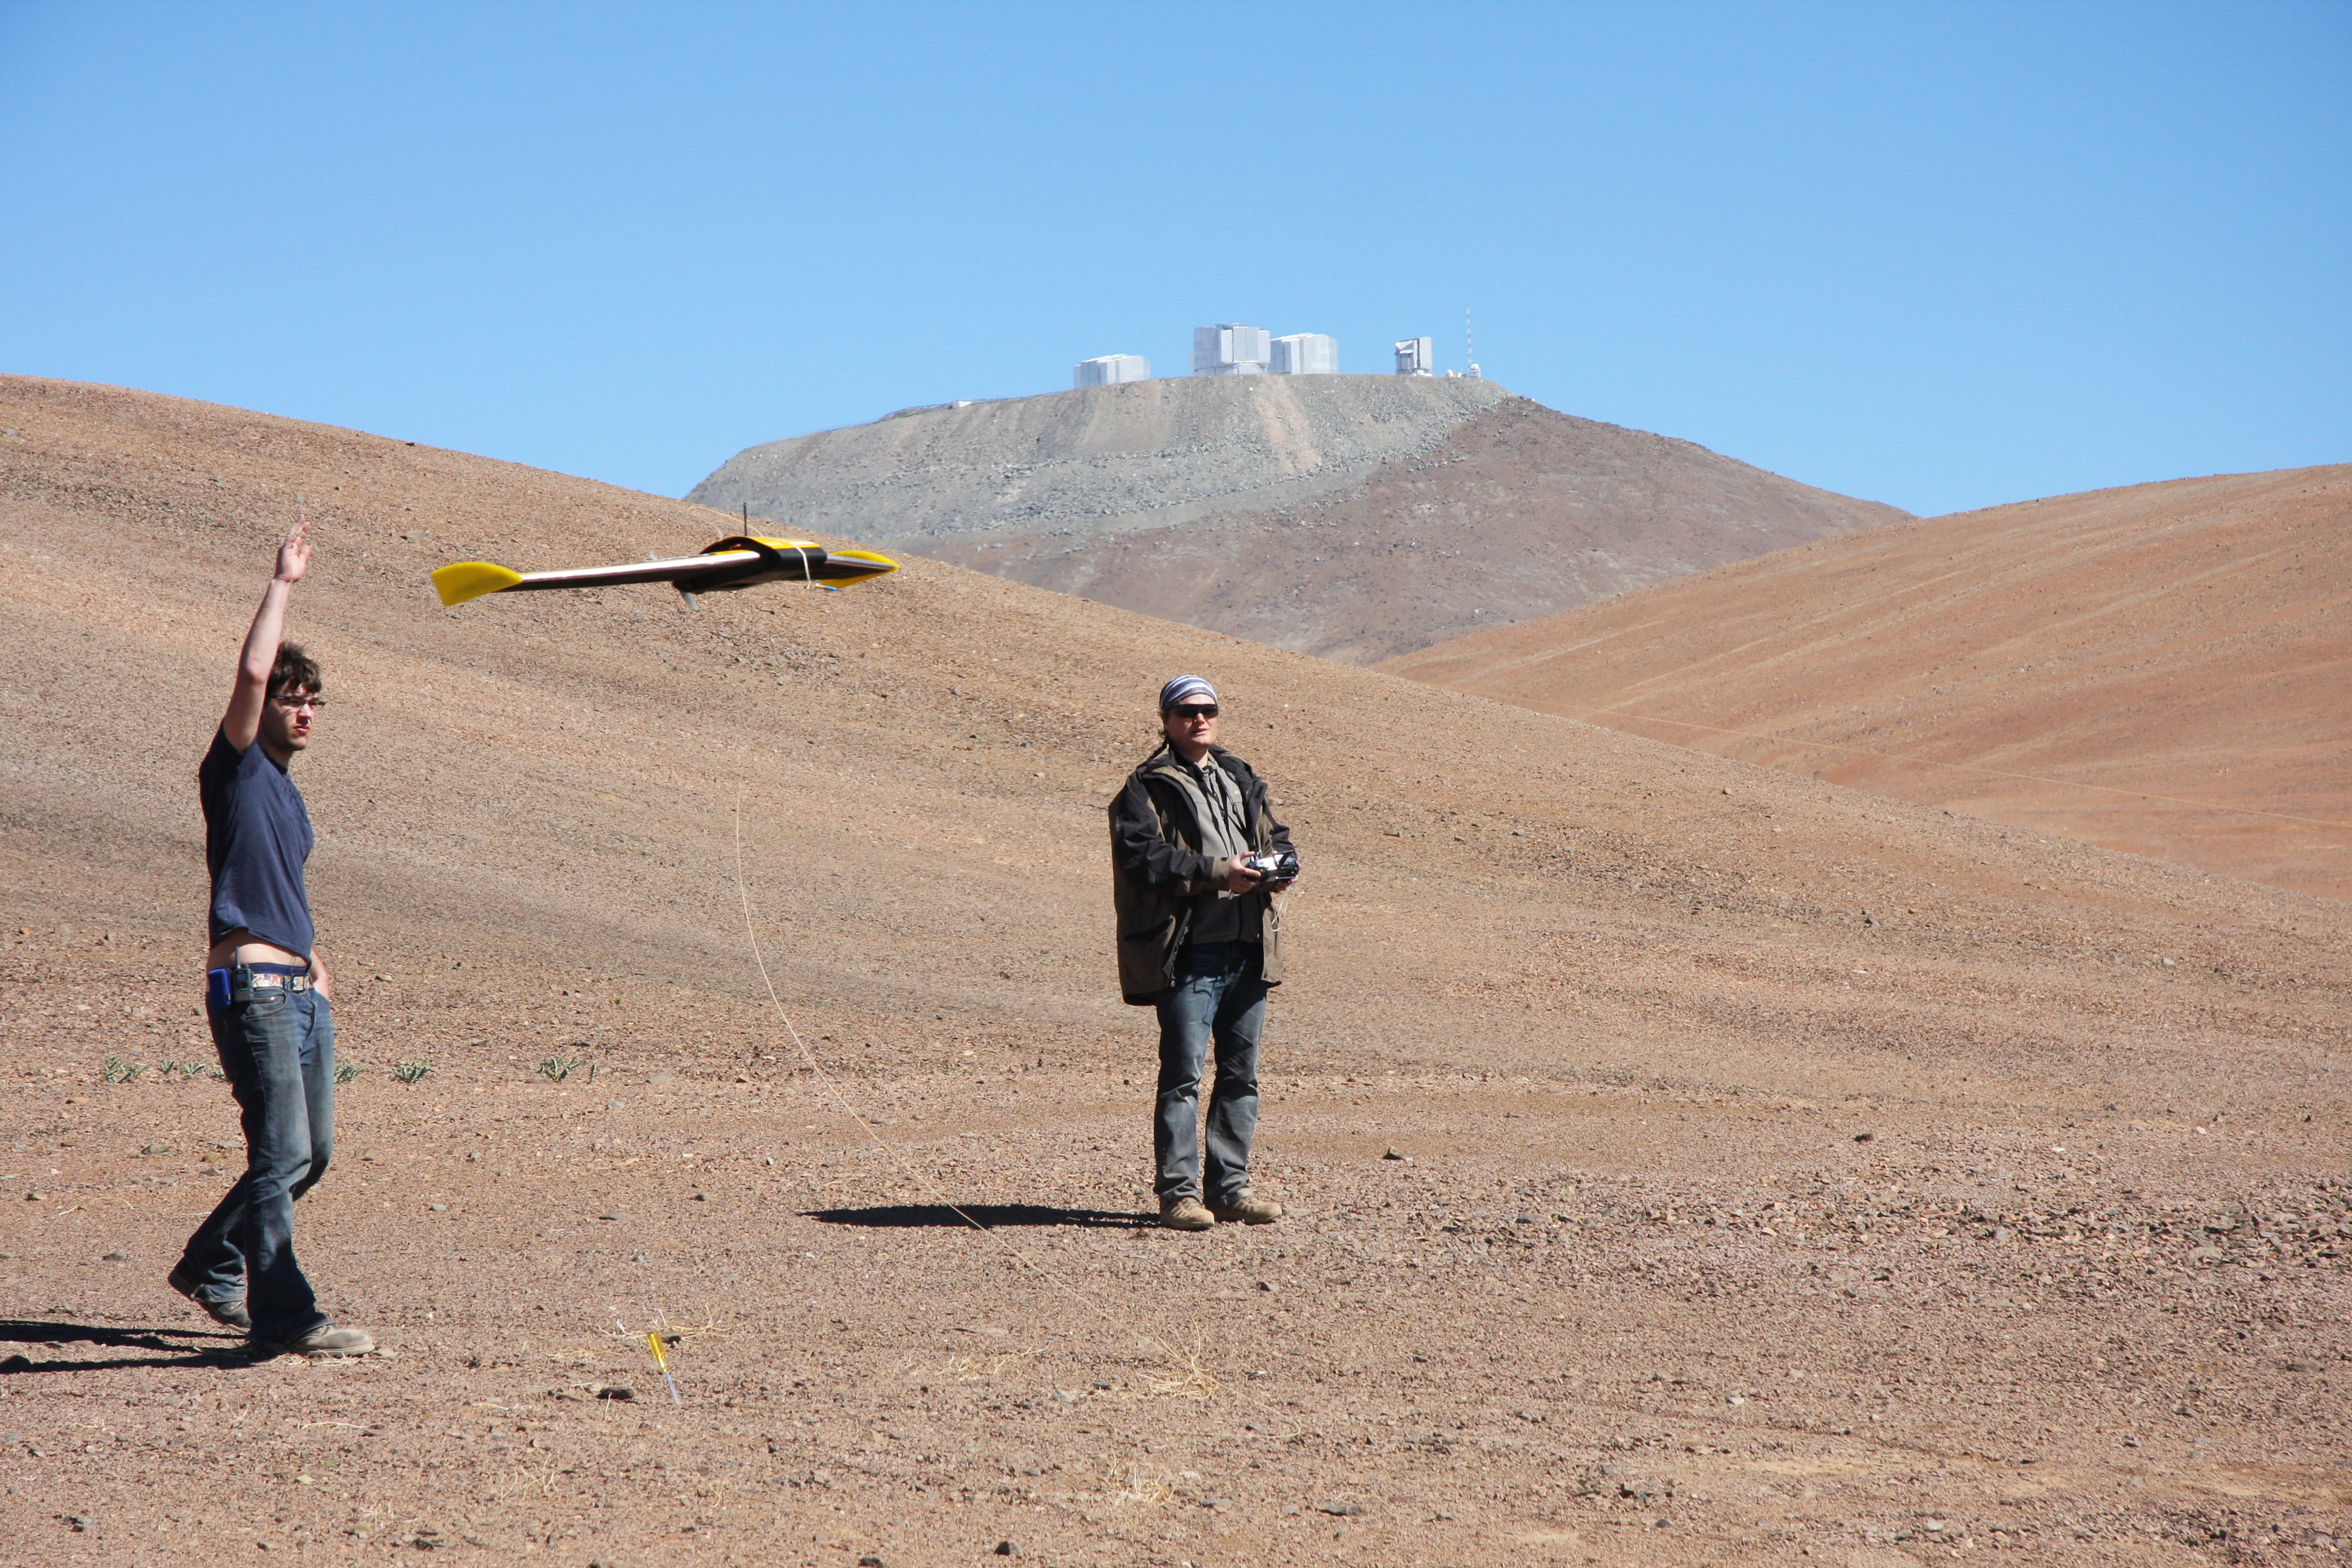 UAV being deployed over the Atacama desert with ESO observatory in the background​